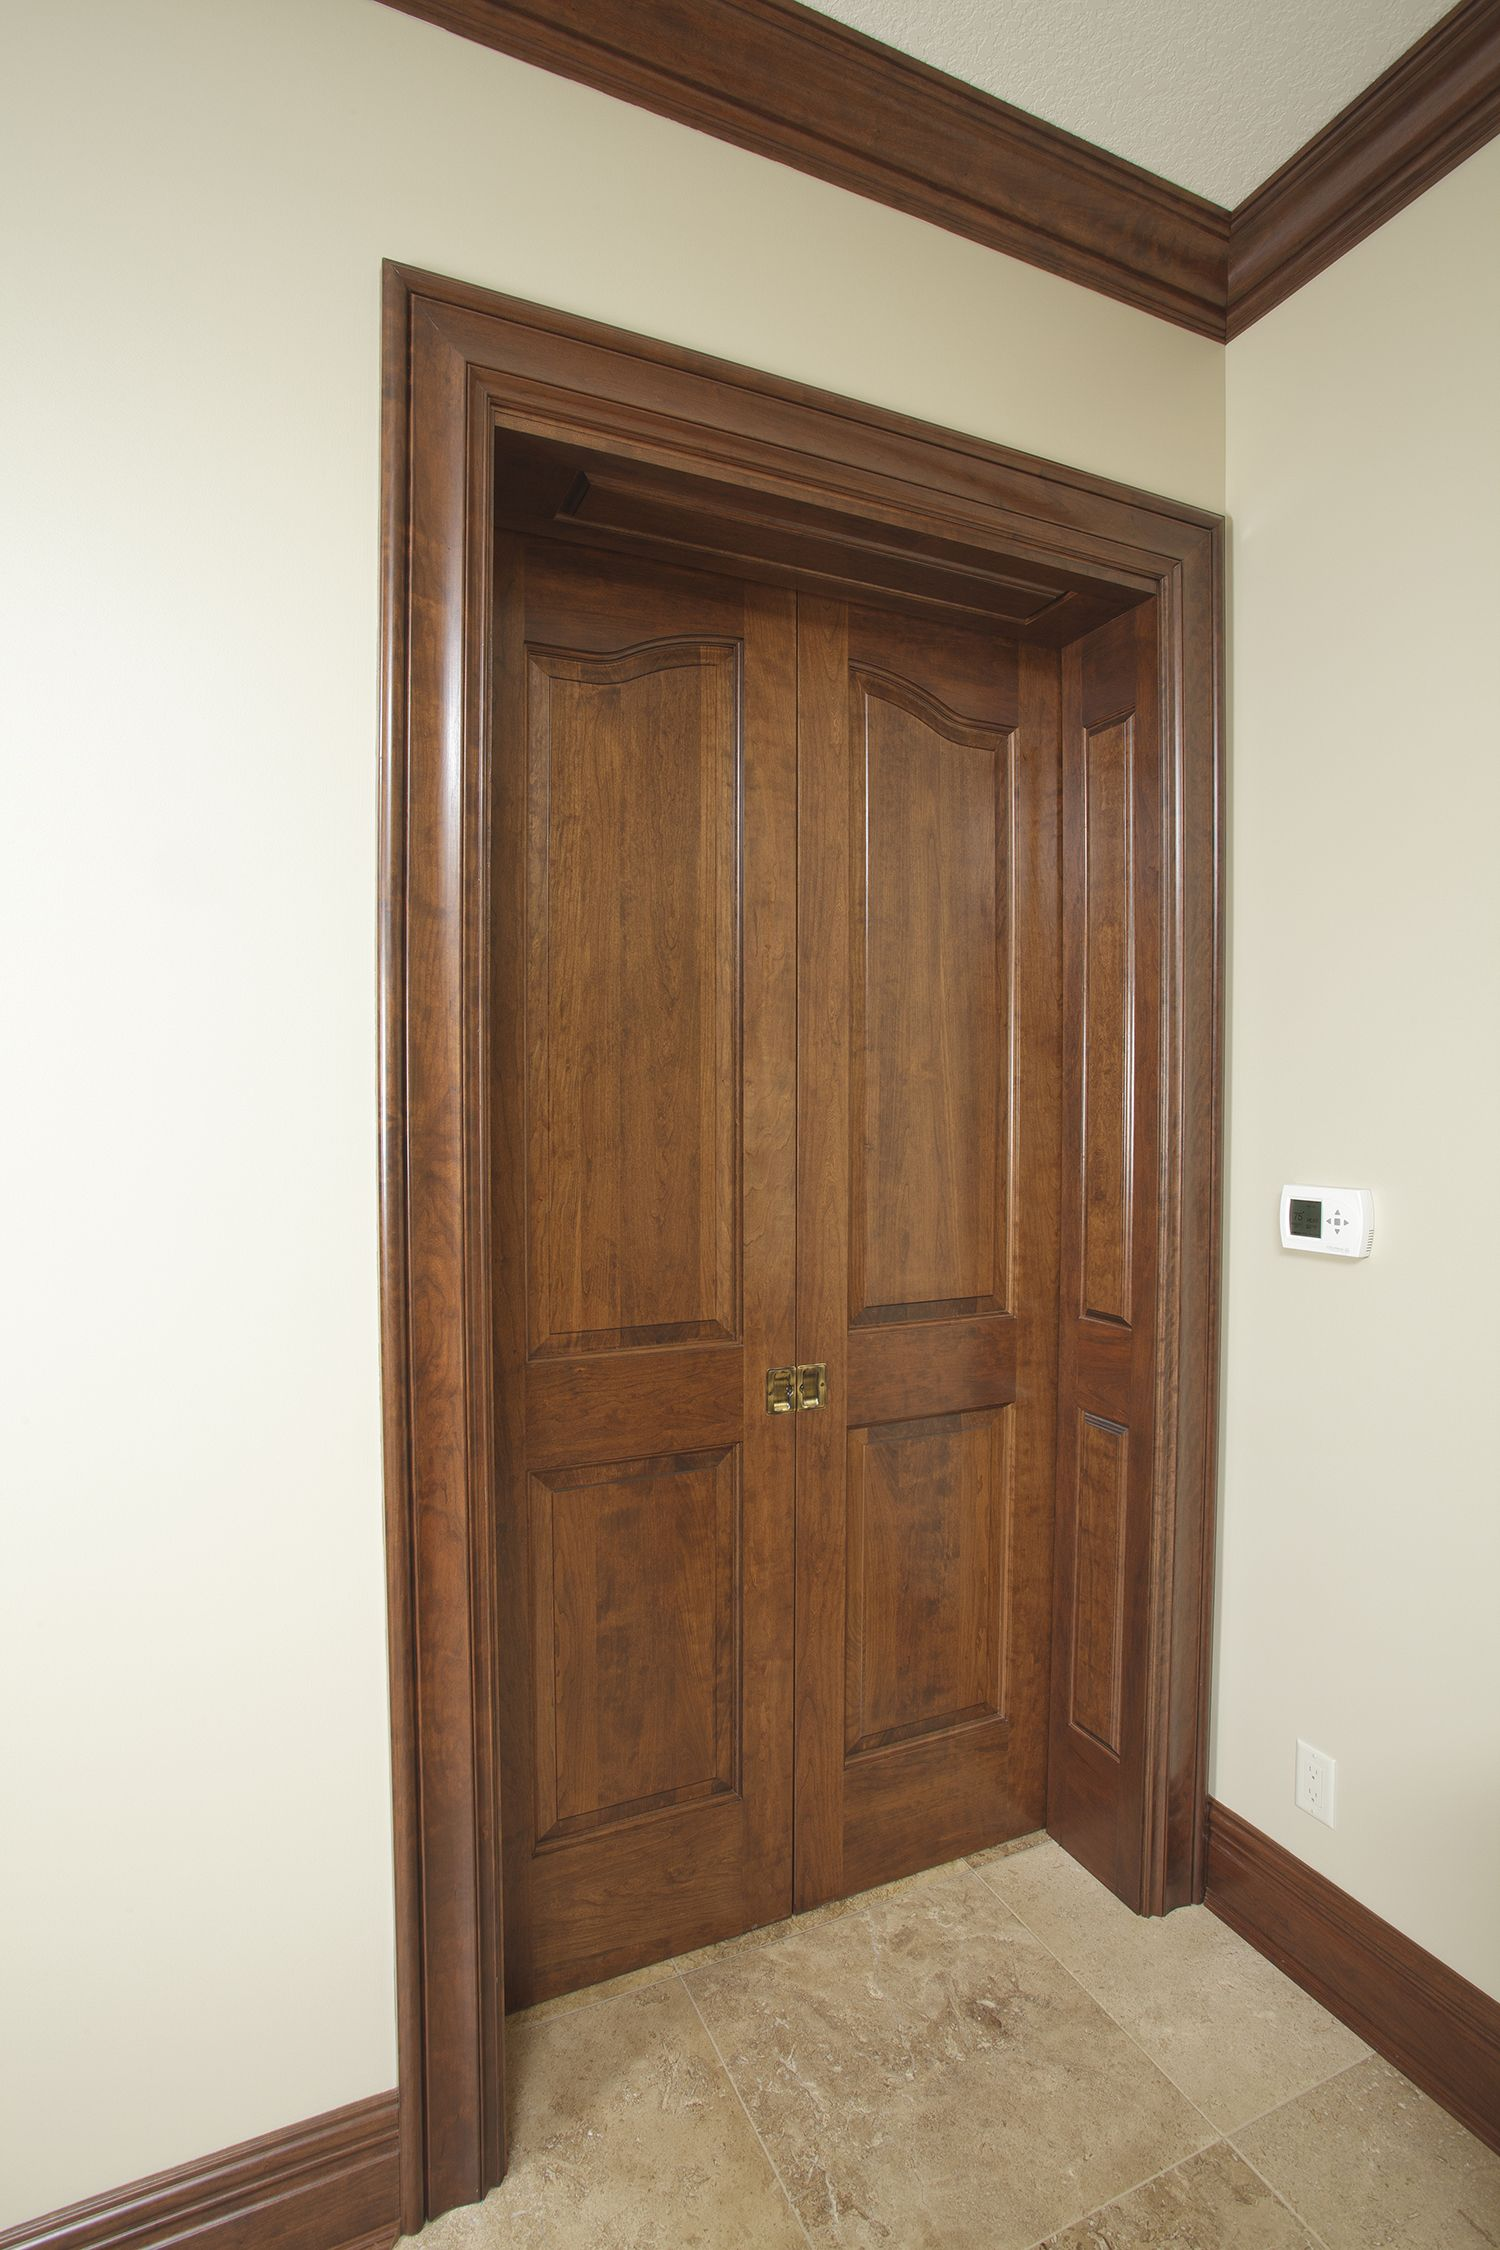 Solid Cherry 1 3 4 Thick X 8 Tall 2 Panel Provincial Double Pocket Doors With Custom Raised Panel Jamb Doors Interior Hardwood Doors Bedroom Doors